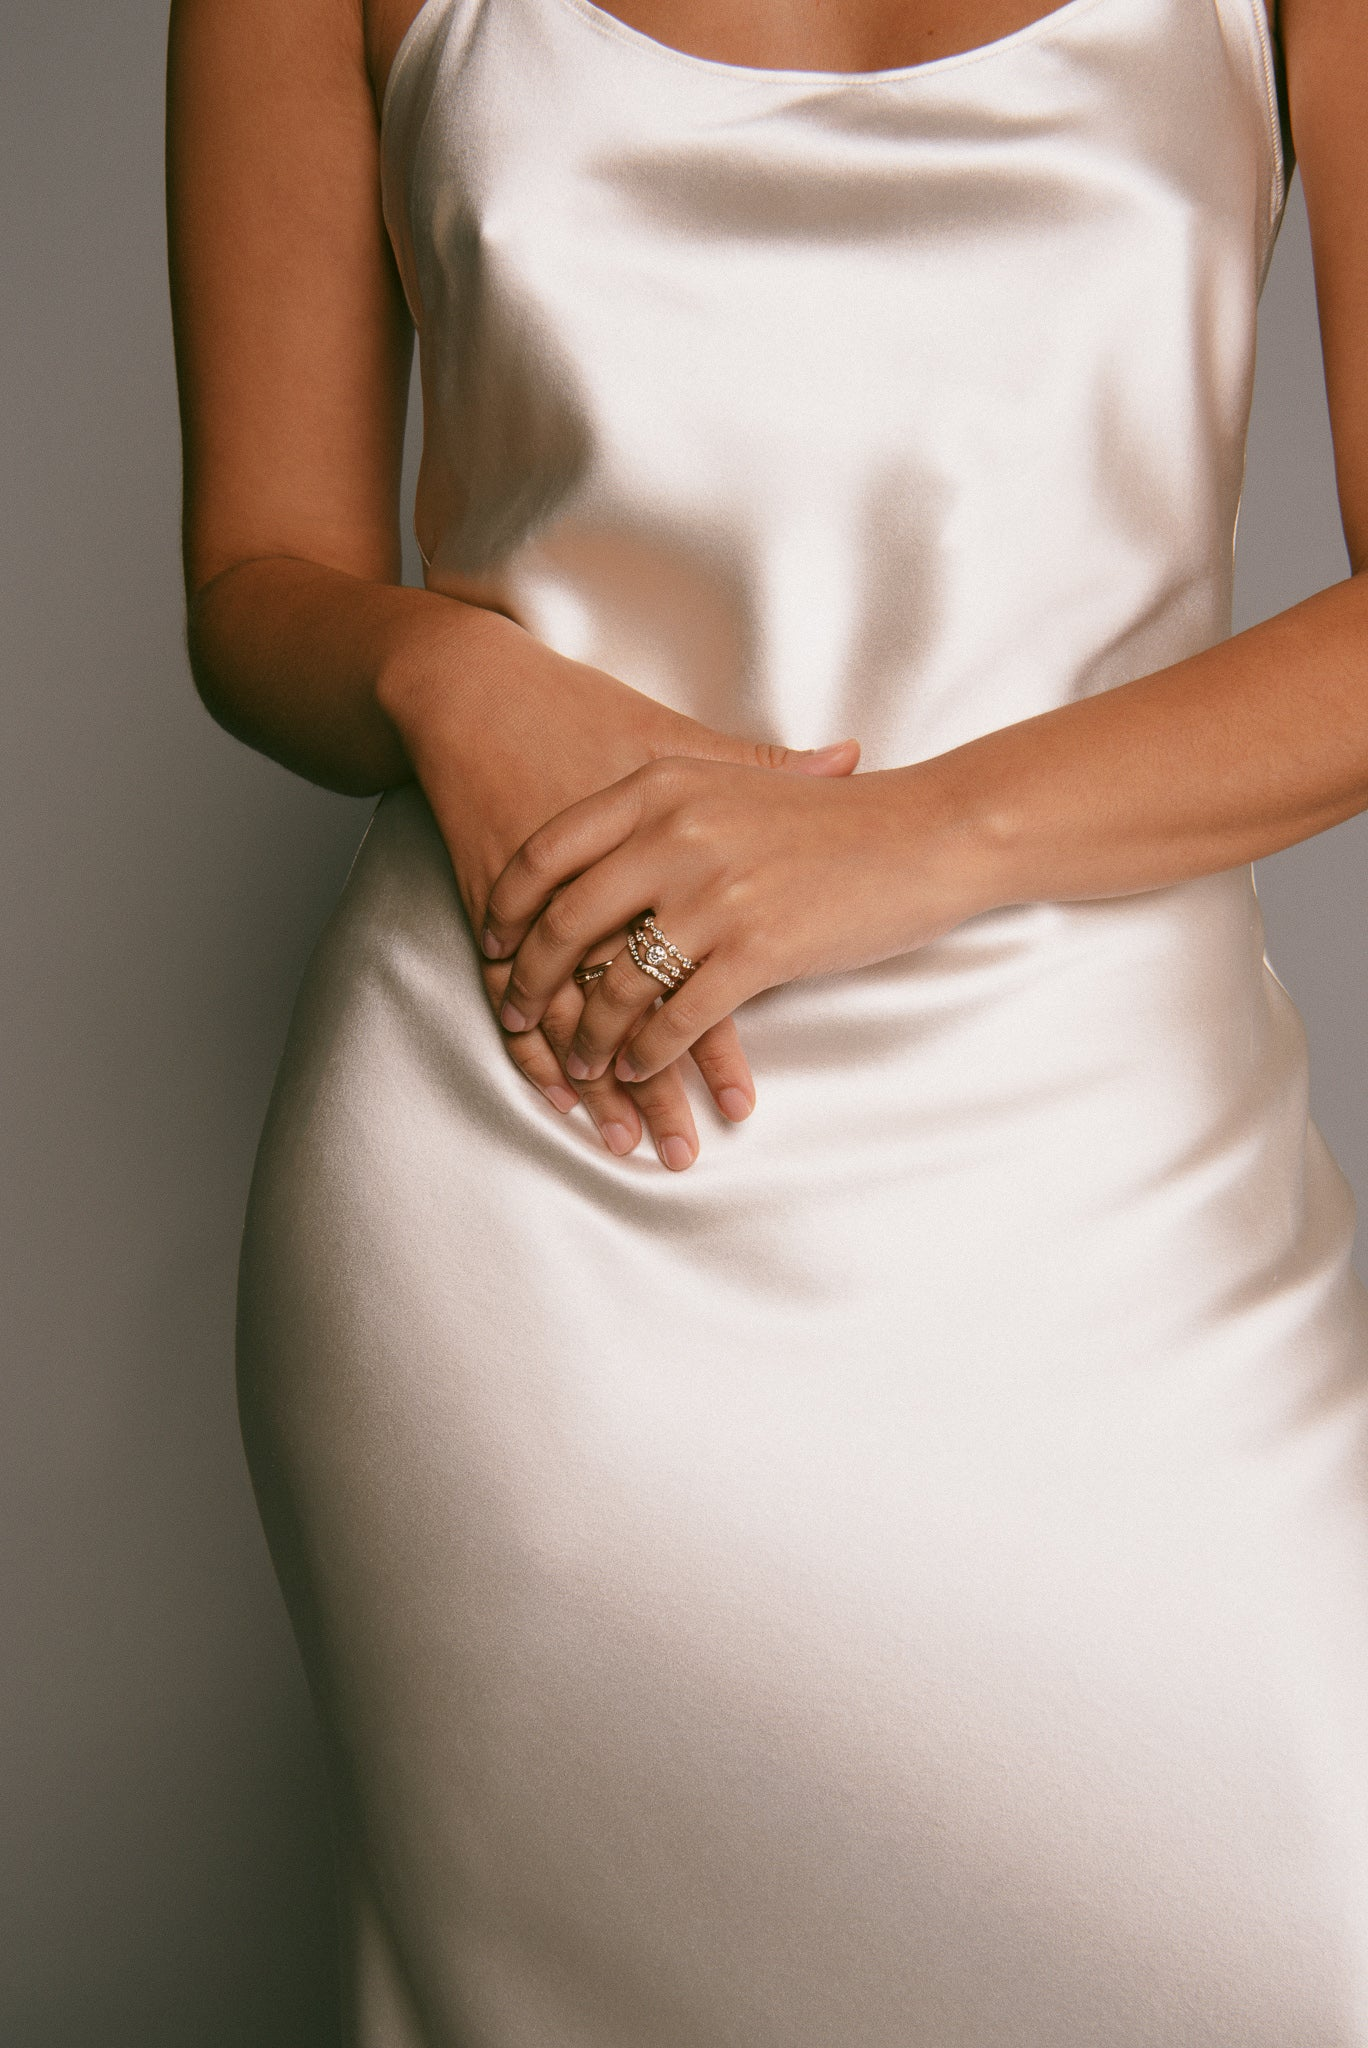 Model in a silk dress, clasping her hands, wearing three bridal-inspired rings.